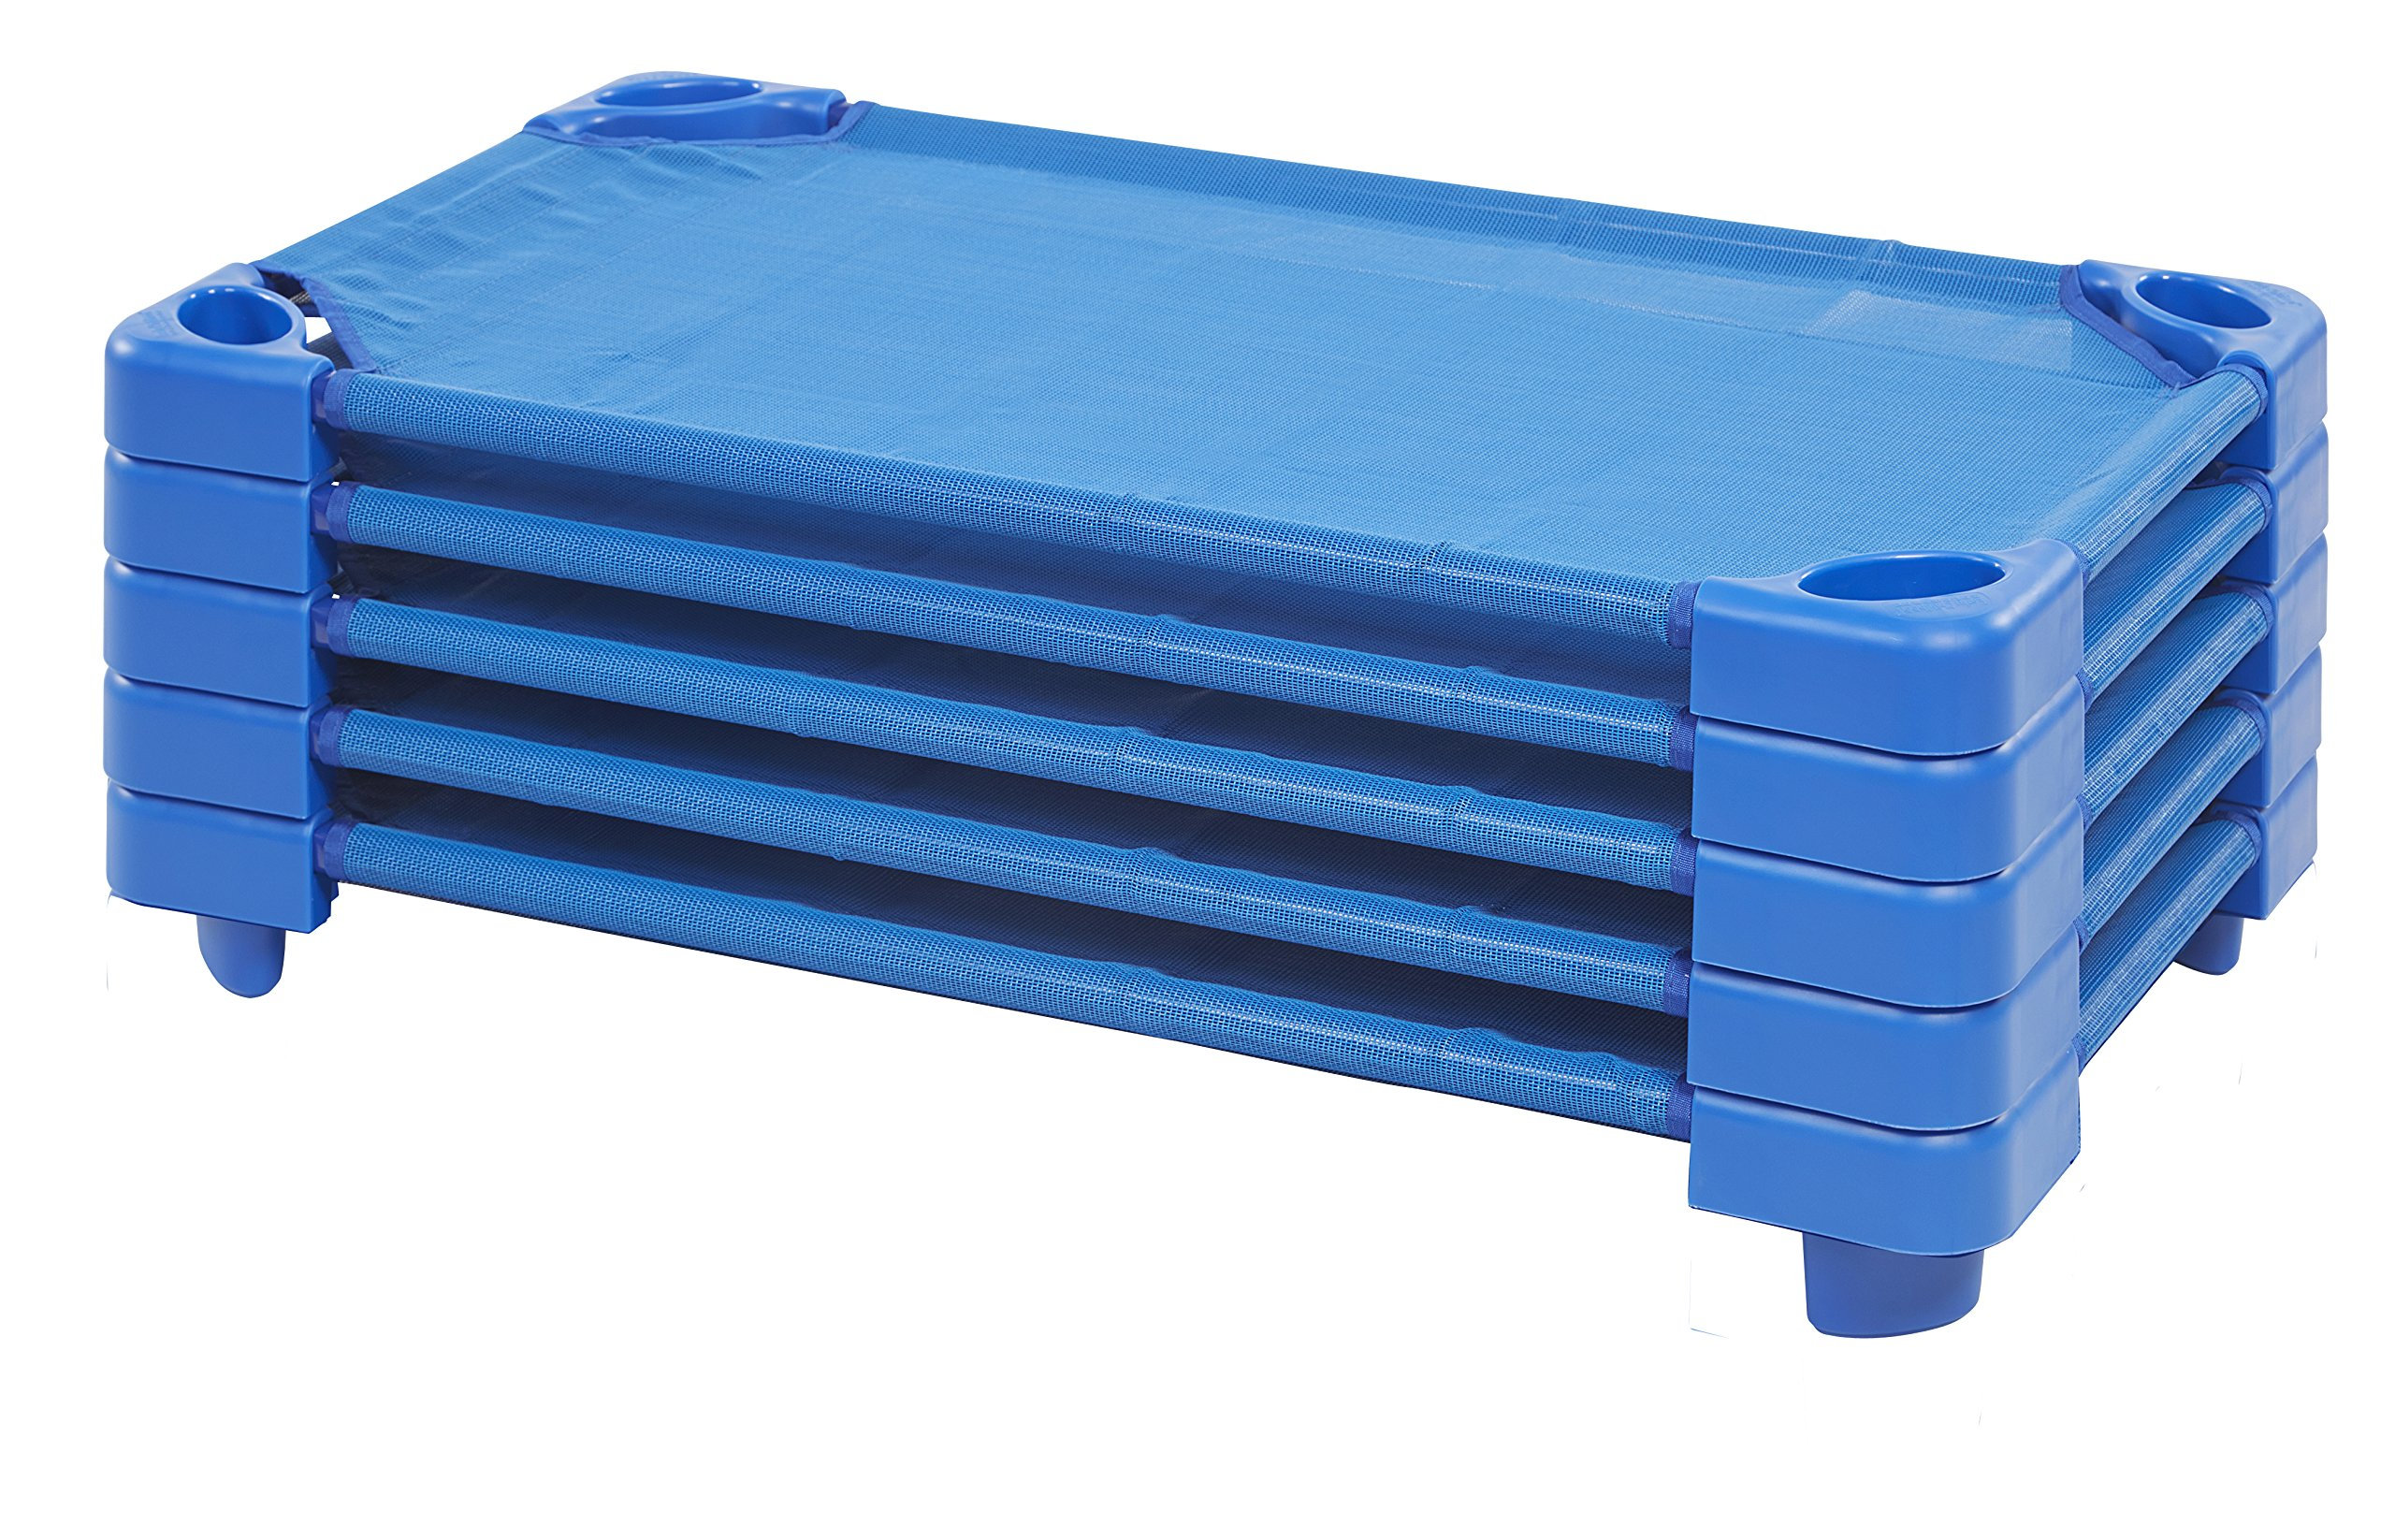 ECR4Kids Toddler Naptime Cot, Stackable Daycare Sleeping Cot for Kids, 40'' L x 23'' W, Ready-to-Assemble, Blue (Set of 6)